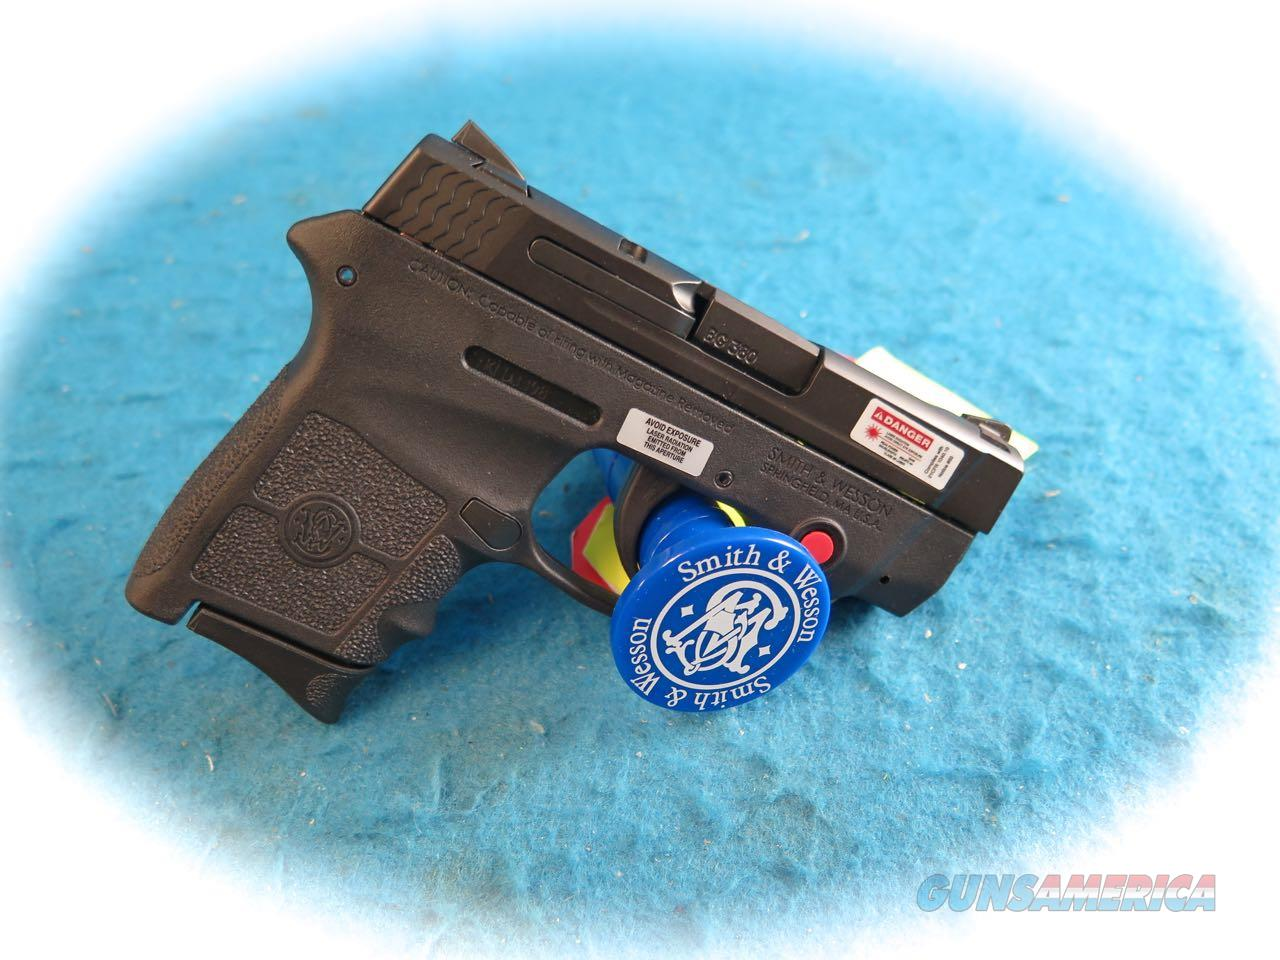 Smith & Wesson M&P Bodyguard w/Laser .380 ACP Pistol SKU 10048 **New**  Guns > Pistols > Smith & Wesson Pistols - Autos > Polymer Frame